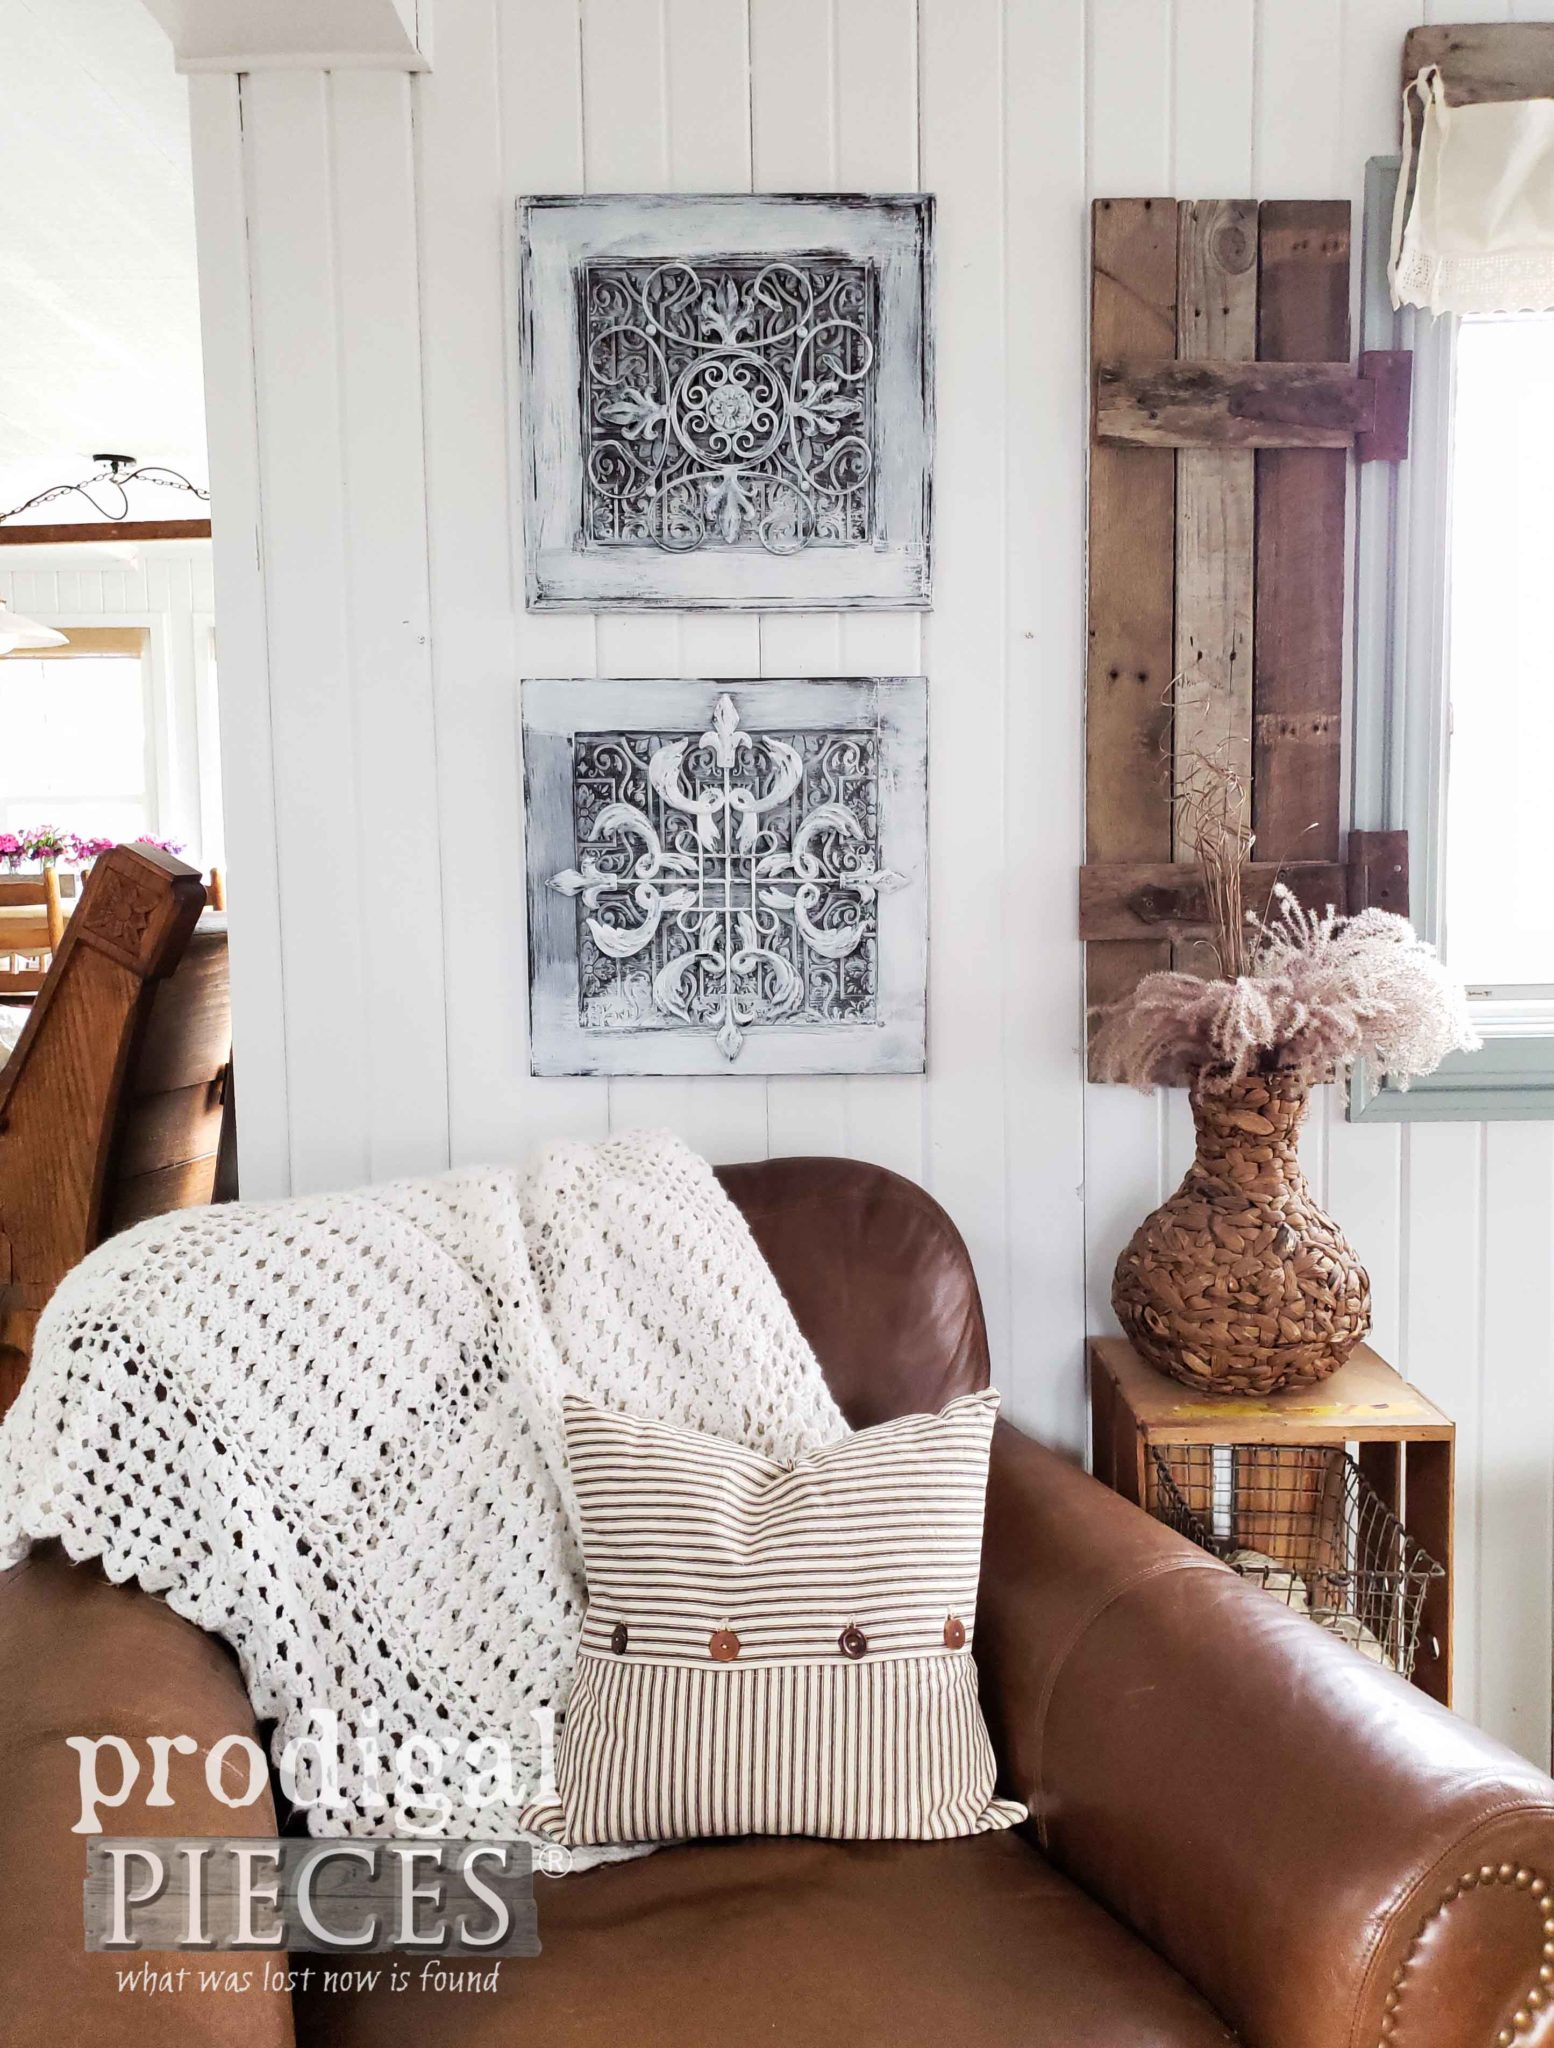 DIY Farmhouse Pressed Ceiling Tin Wall Art by Larissa of Prodigal Pieces | prodigalpieces.com #prodigalpieces #diy #farmhouse #homedecor #home